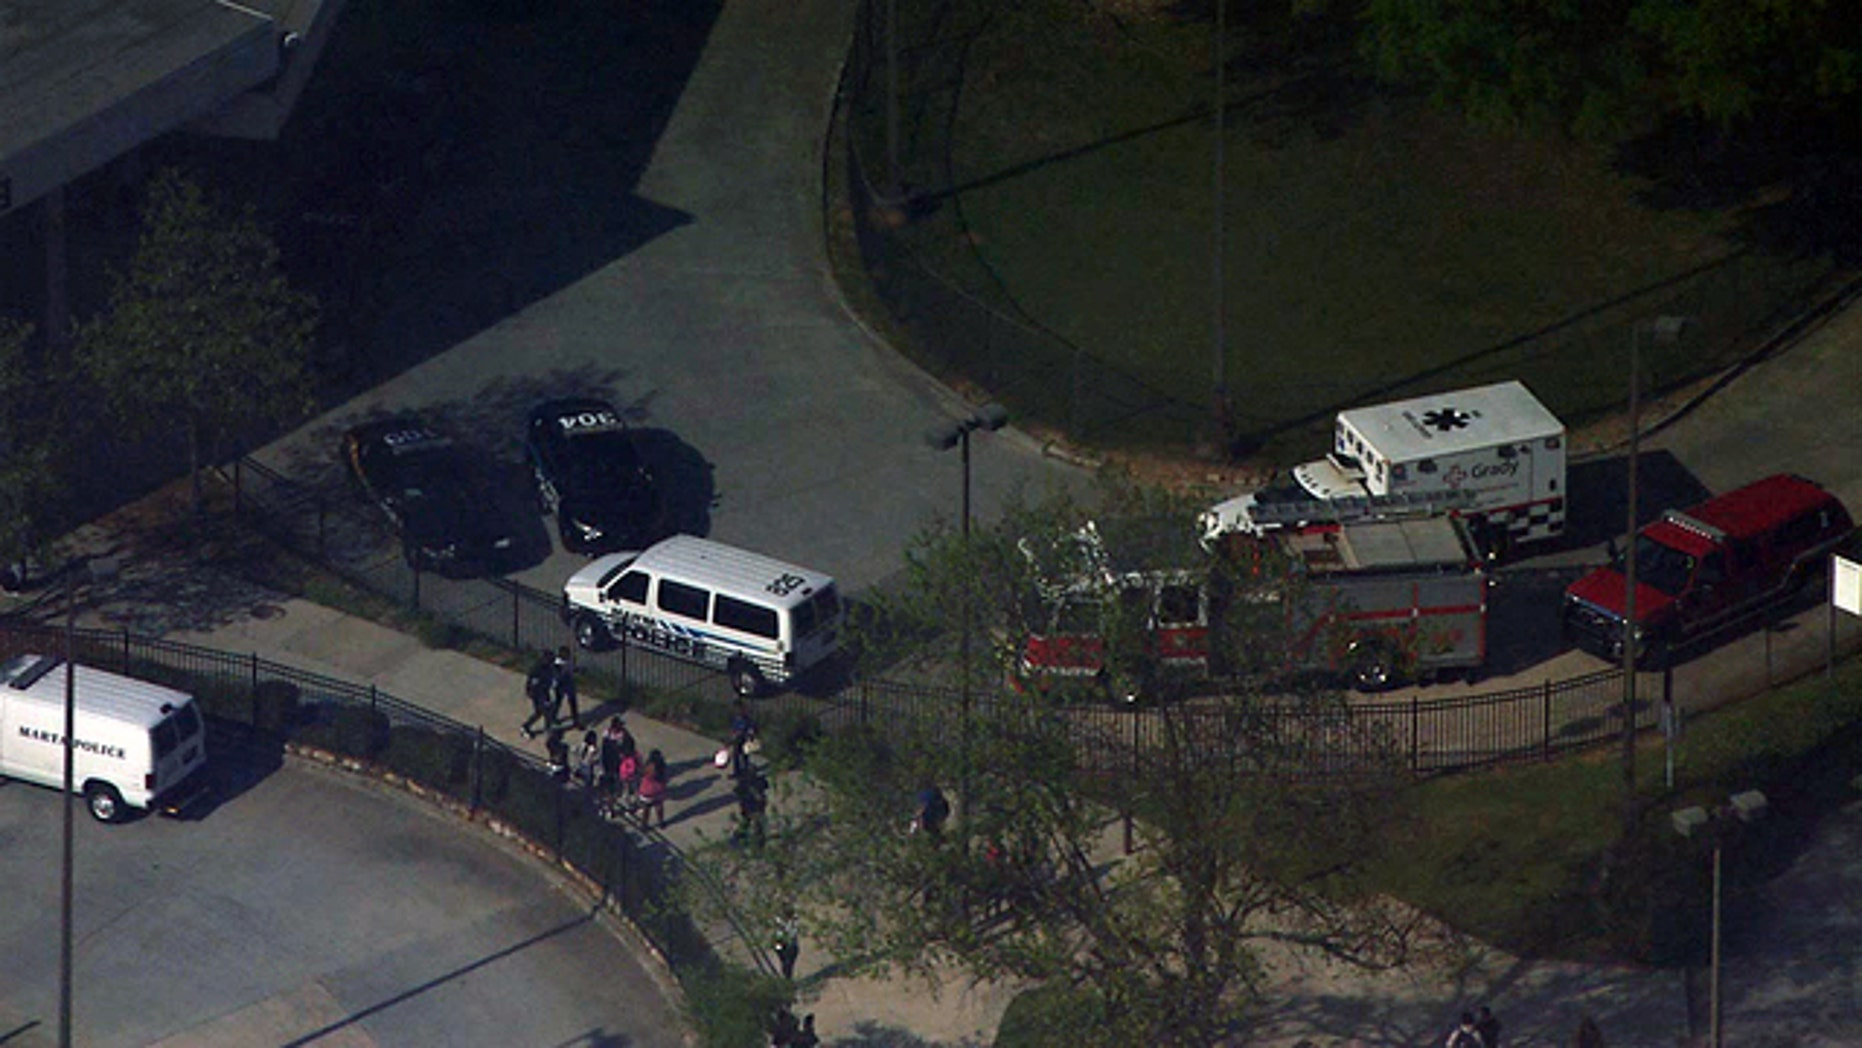 Emergency vehicles respond to the West Lake MARTA station after a shooting on board a train in Atlanta Thursday, April 13, 2017.